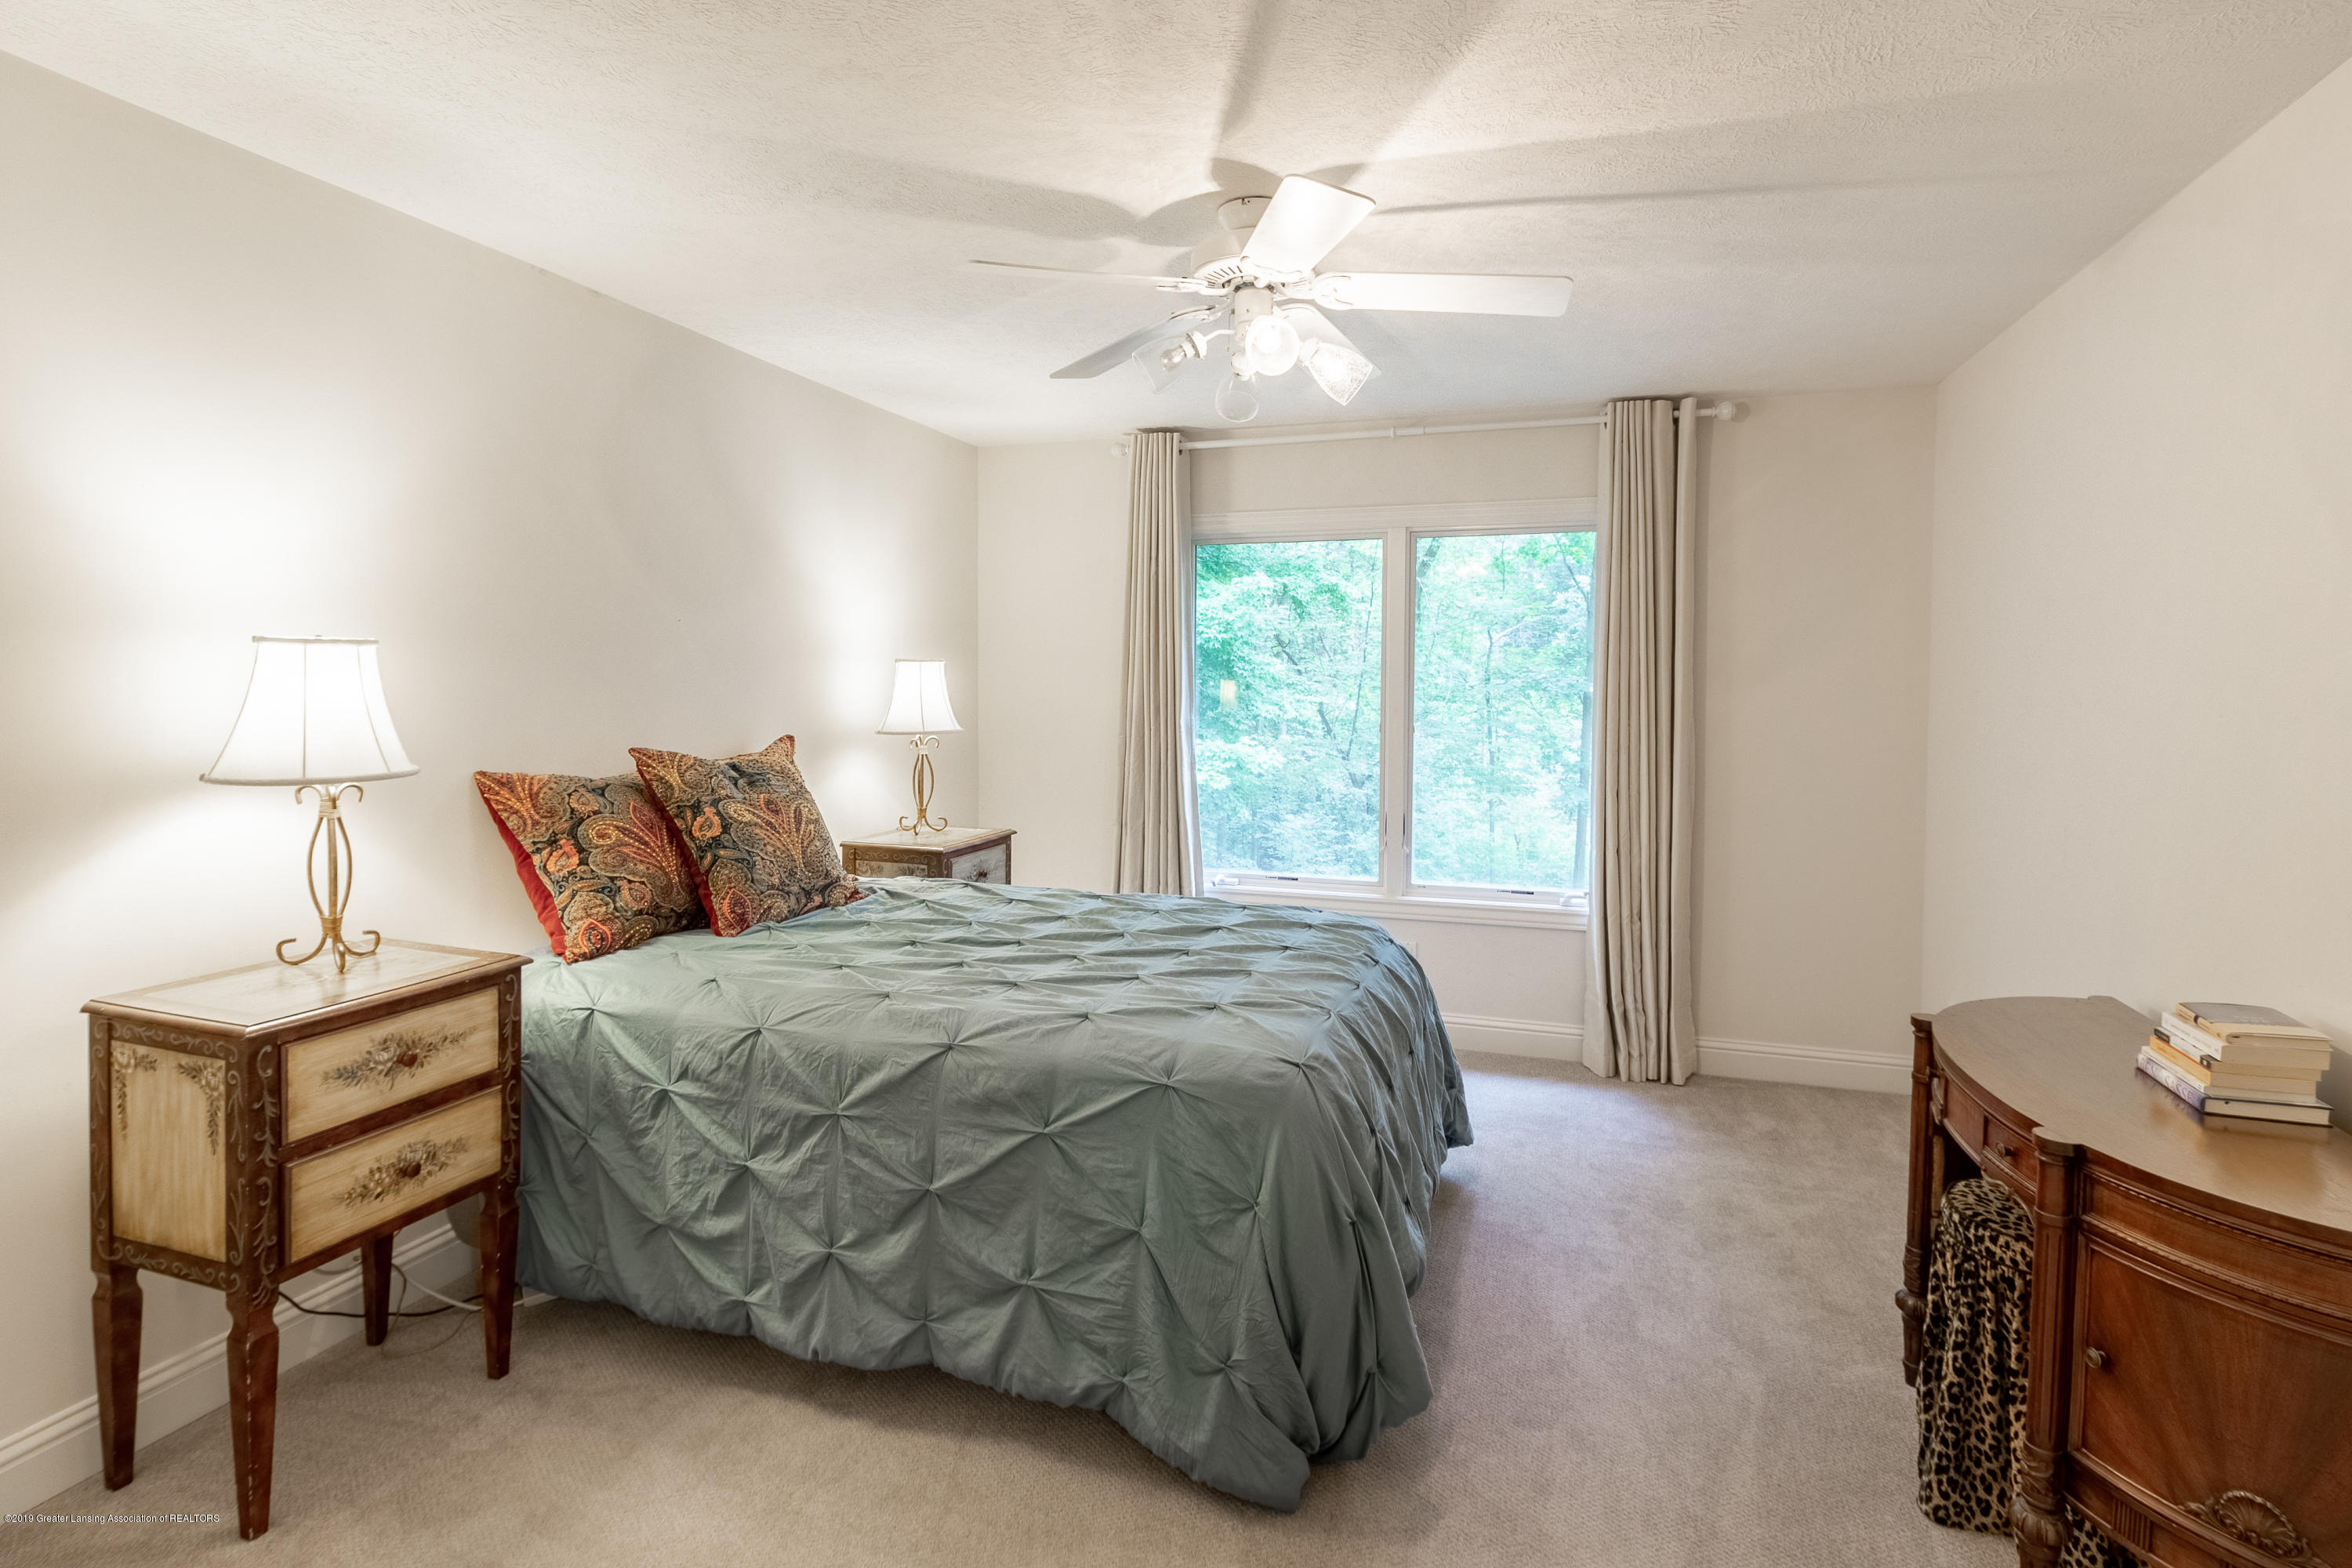 3700 Beech Tree Ln - BEDROOM 3 - 51